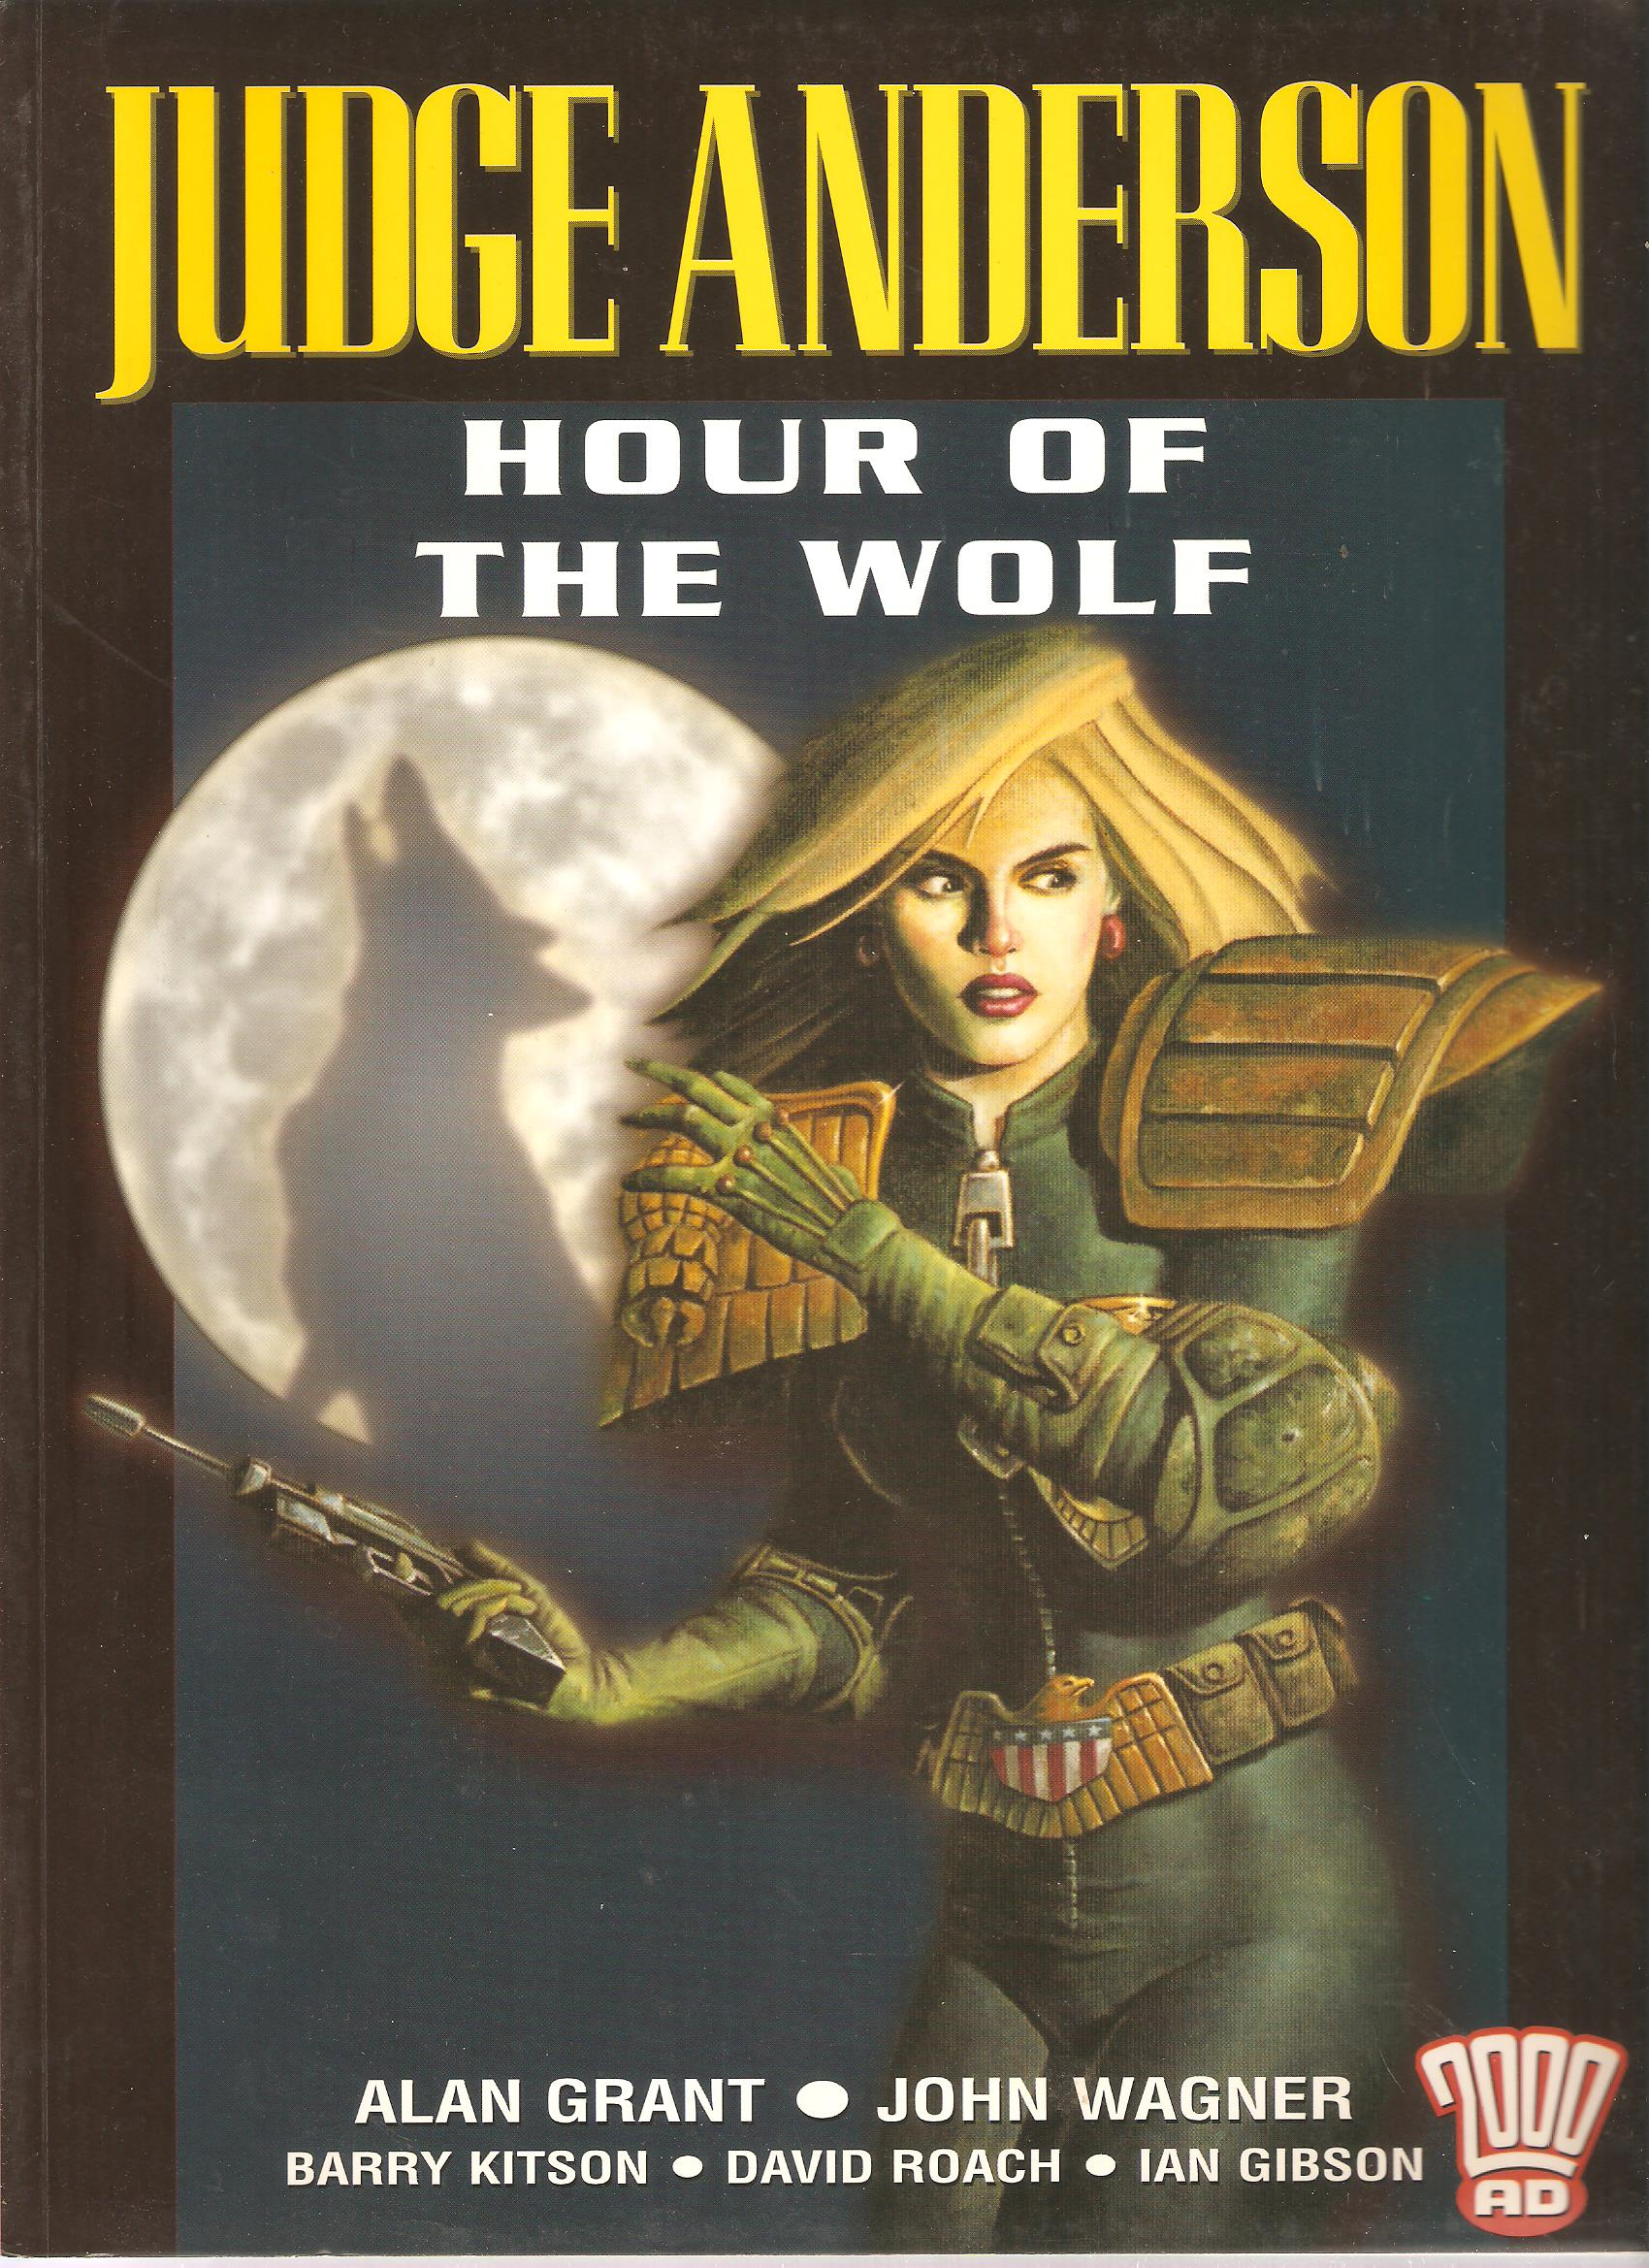 A - 2000 AD Judge Anderson: The Hour of the Wolf